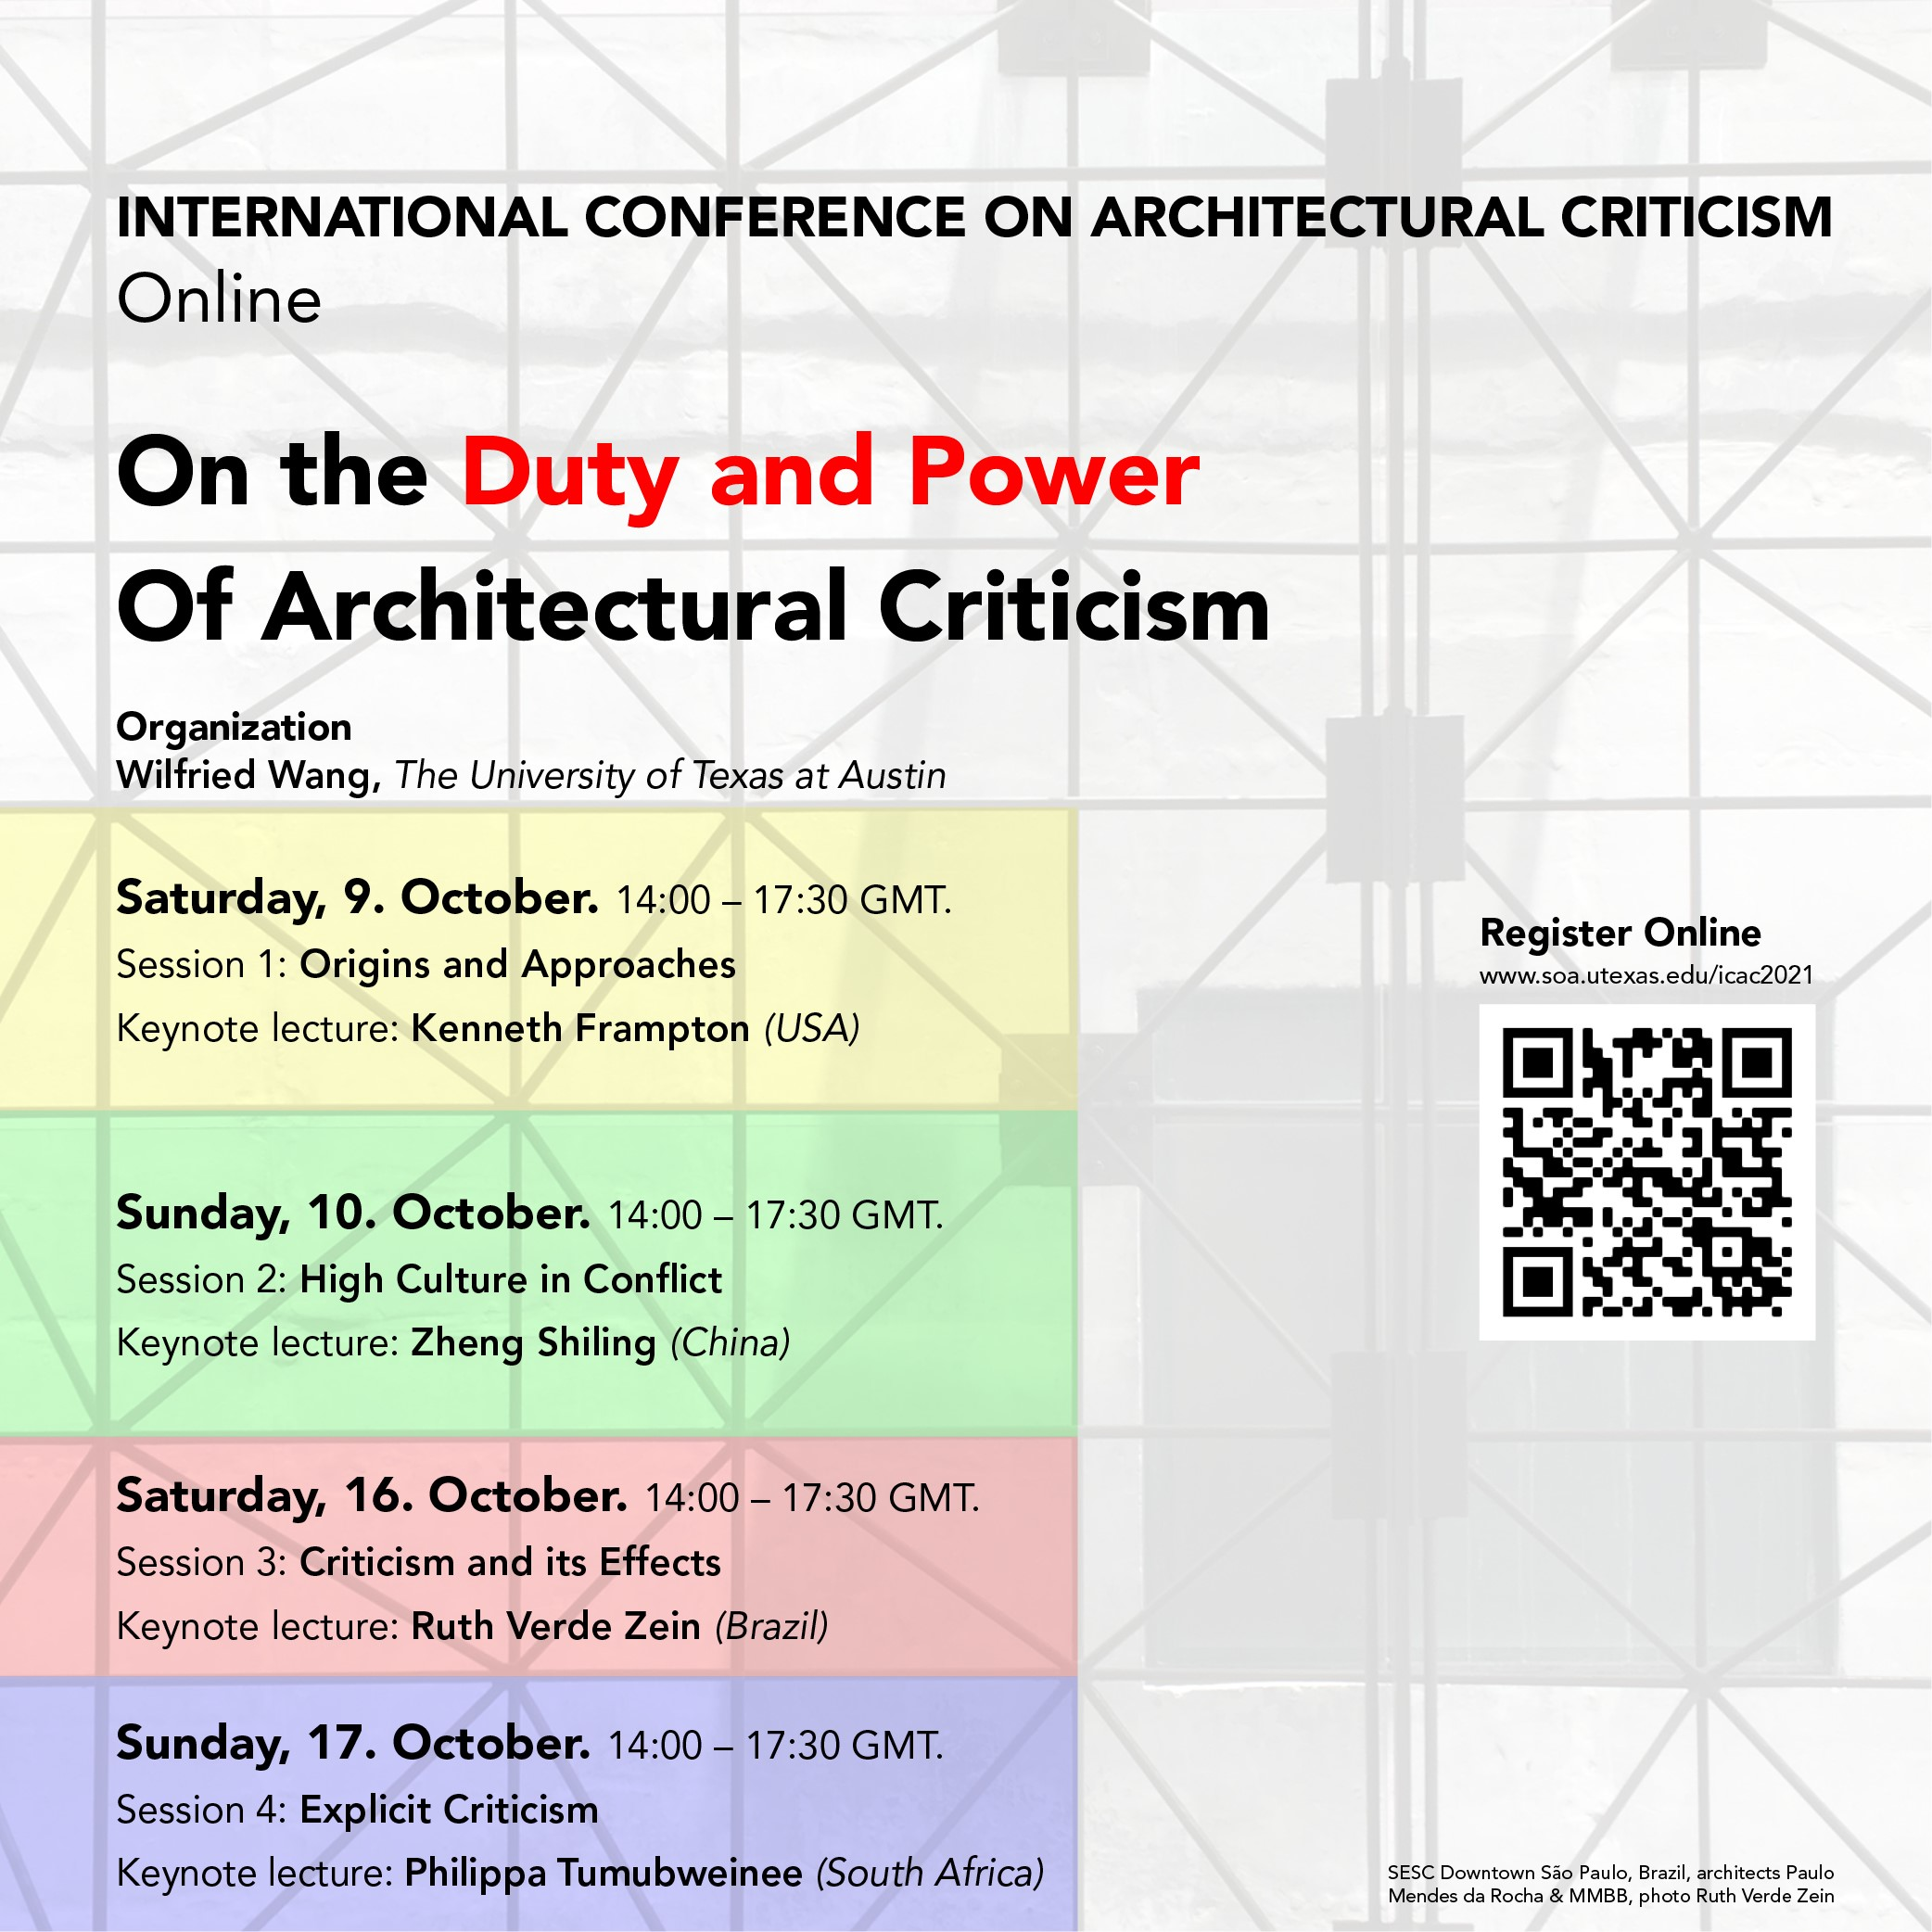 Overall On the Duty and Power of Architectural Criticism Poster